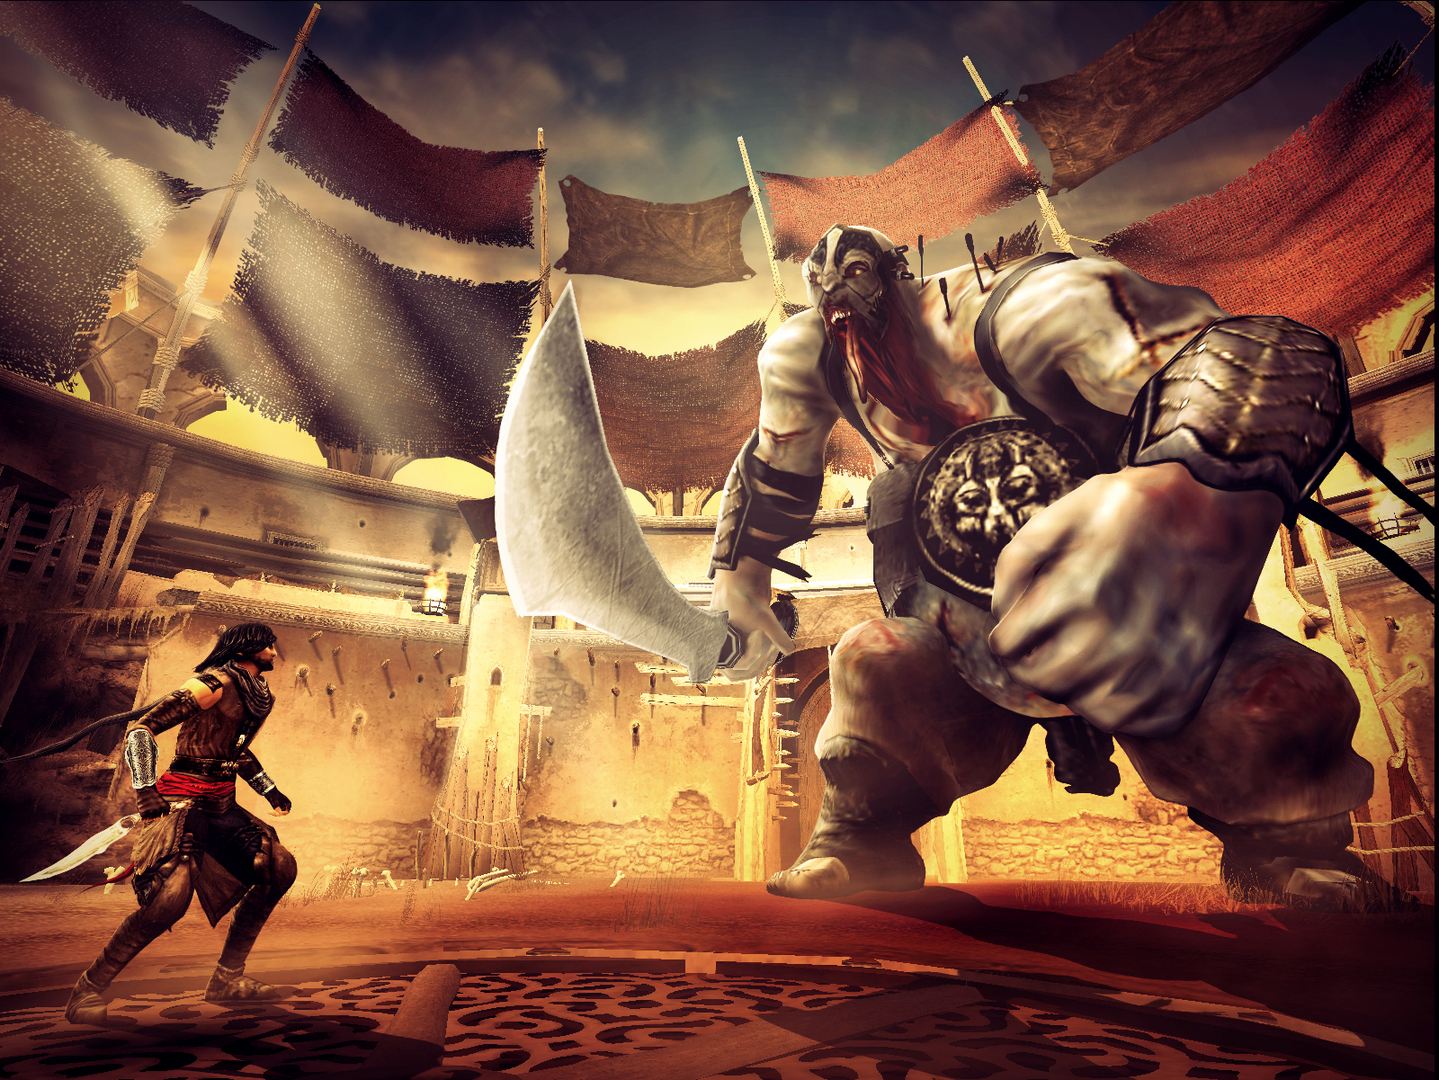 Prince of Persia: The Two Thrones Free Download image 1